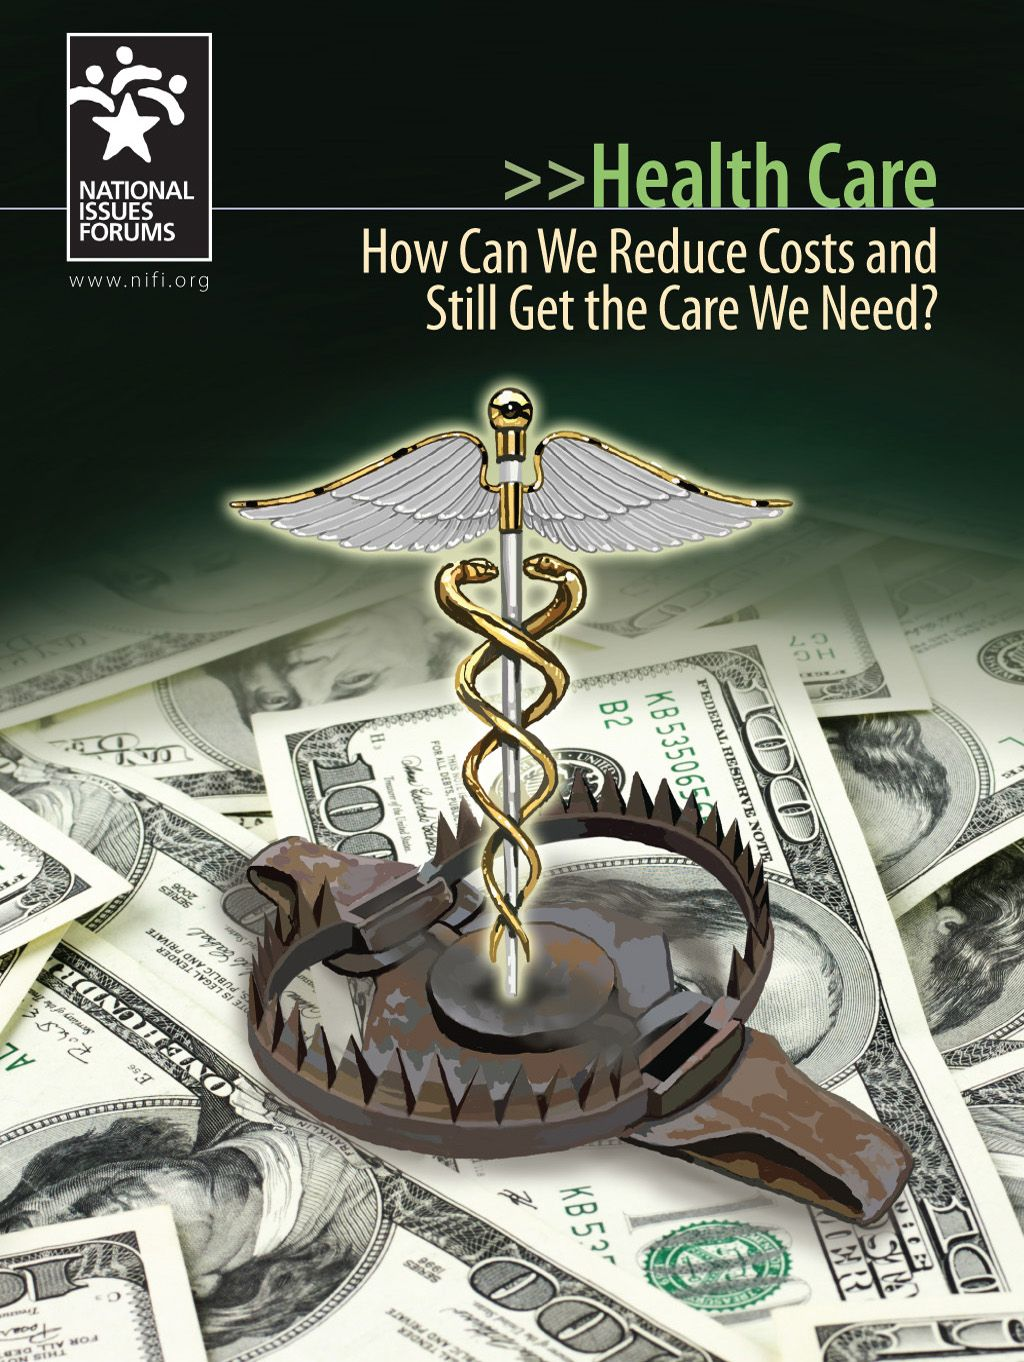 Health Care guide cover